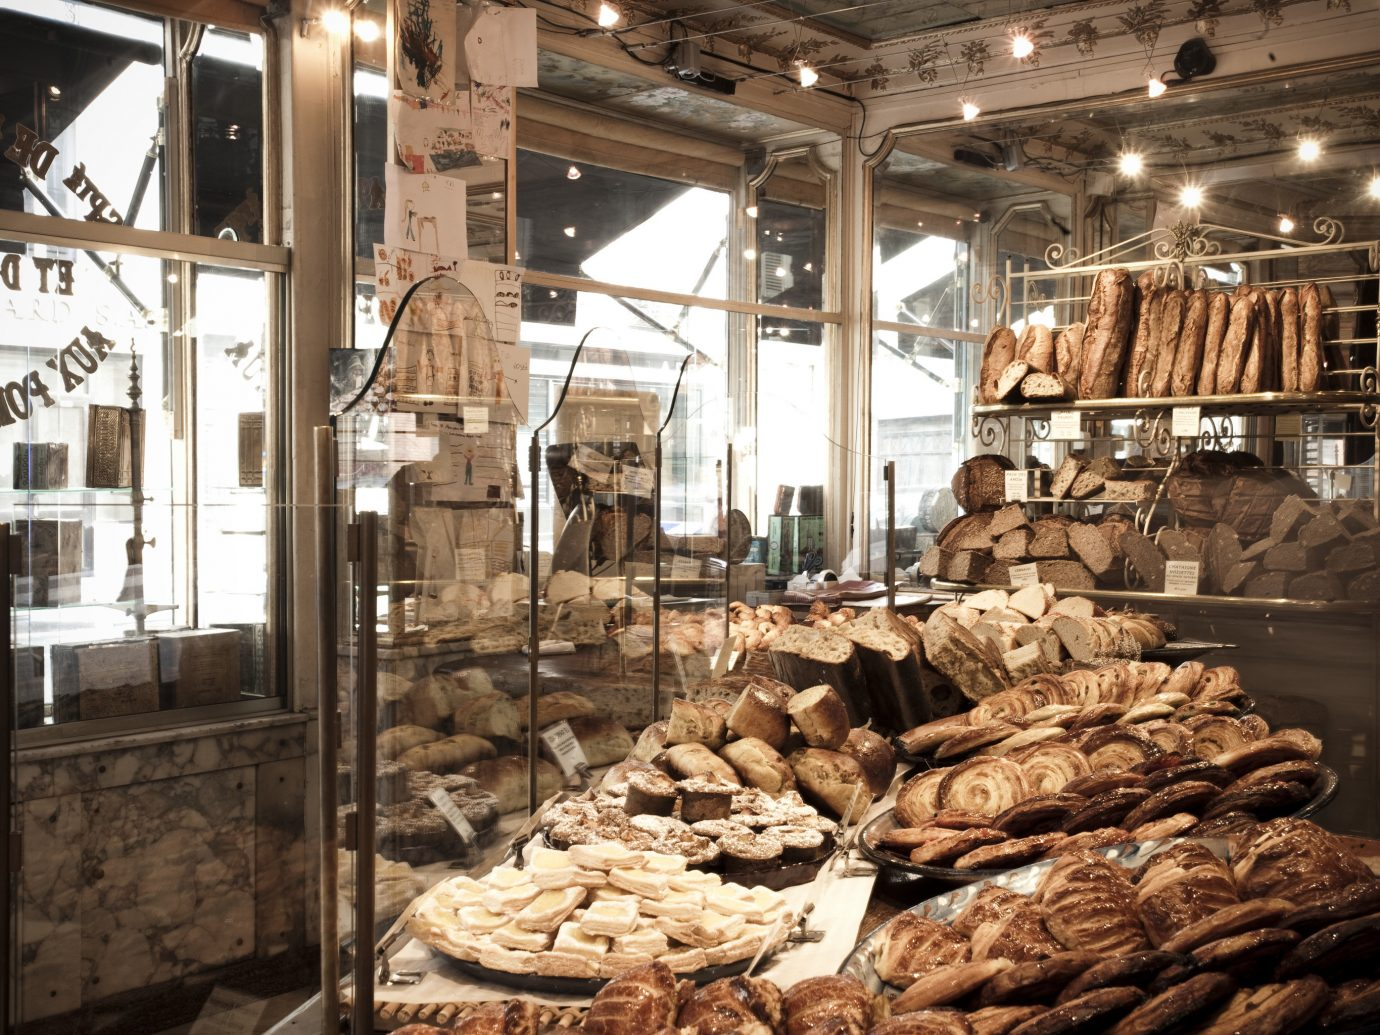 Food + Drink France Paris indoor pastry bakery building case wood food market stall store Shop baked sale several